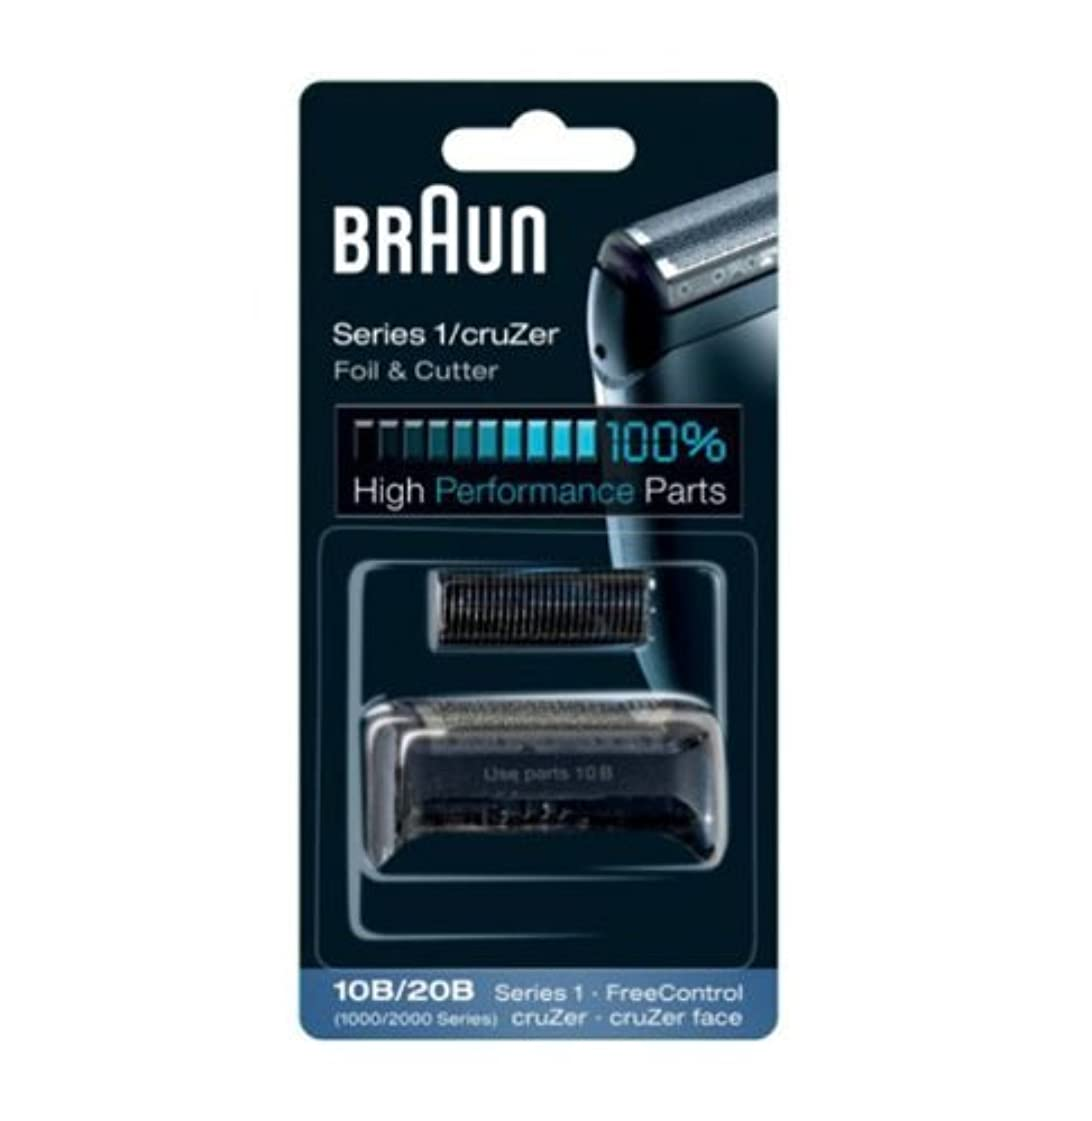 無一文トランスミッション無知Braun Replacement Foil & Cutter - 10B, Series 1,FreeControl - 1000 Series by Braun [並行輸入品]